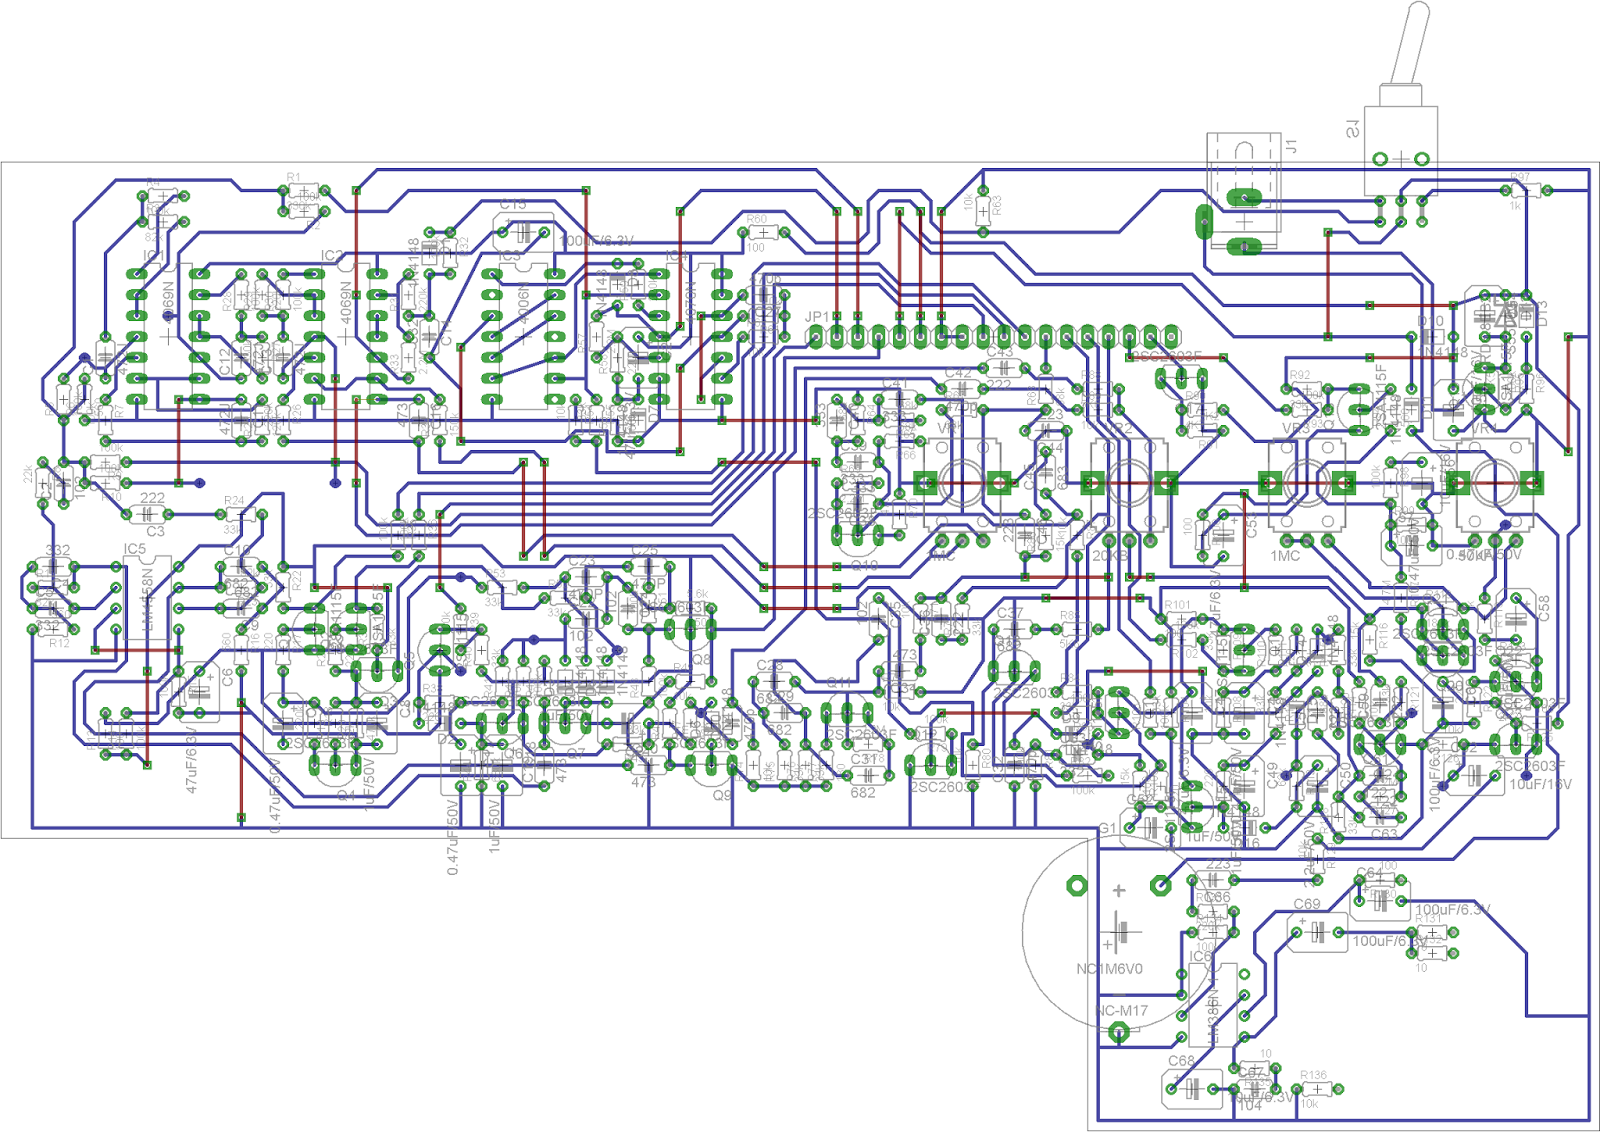 ZEN Instruments: DR-110 Schematic and PCB